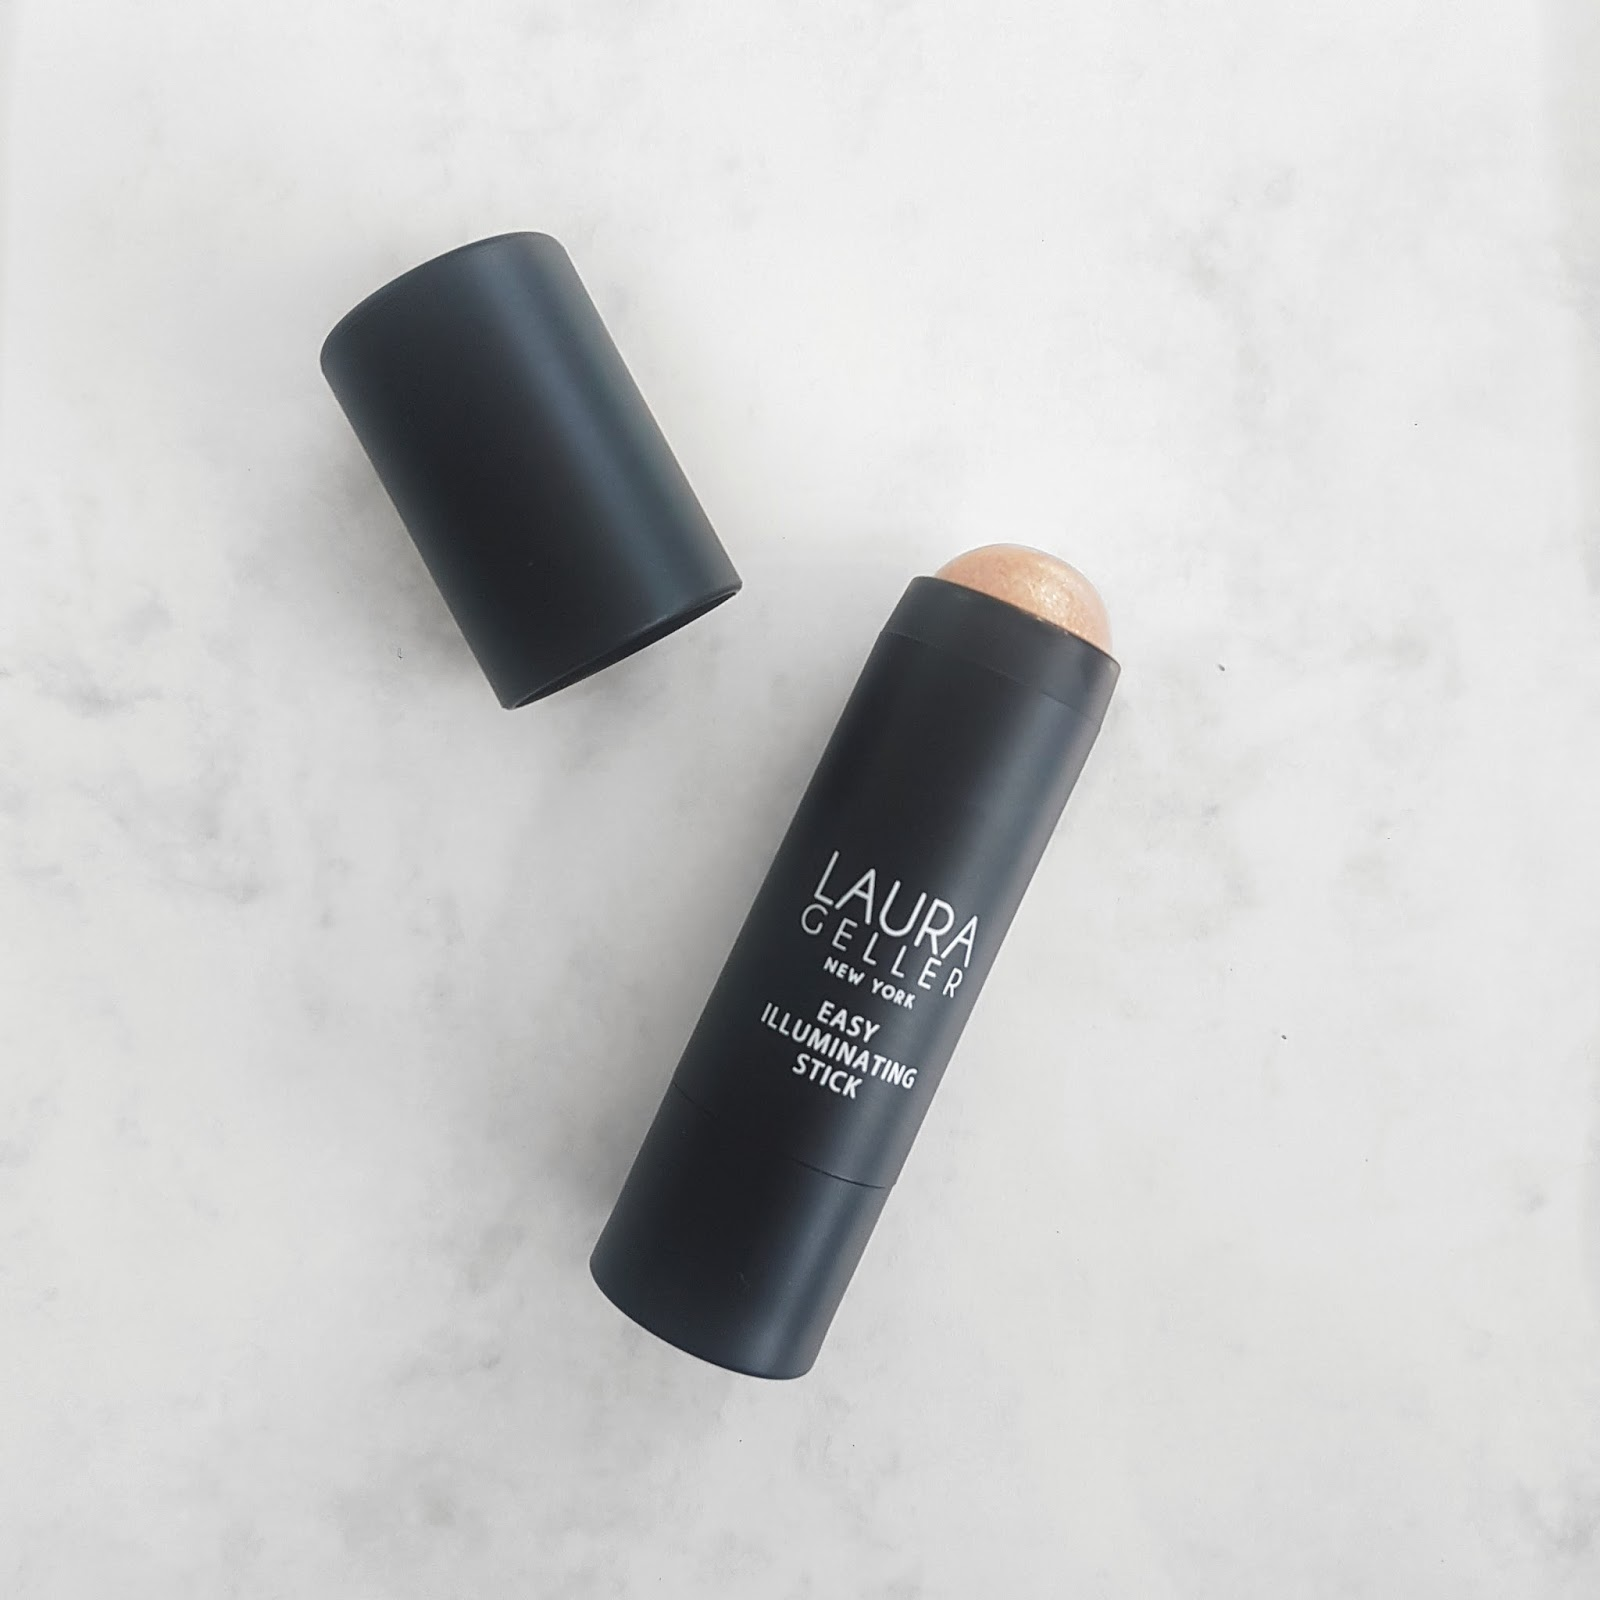 Laura Geller Easy Illuminating Stick - Gilded Honey